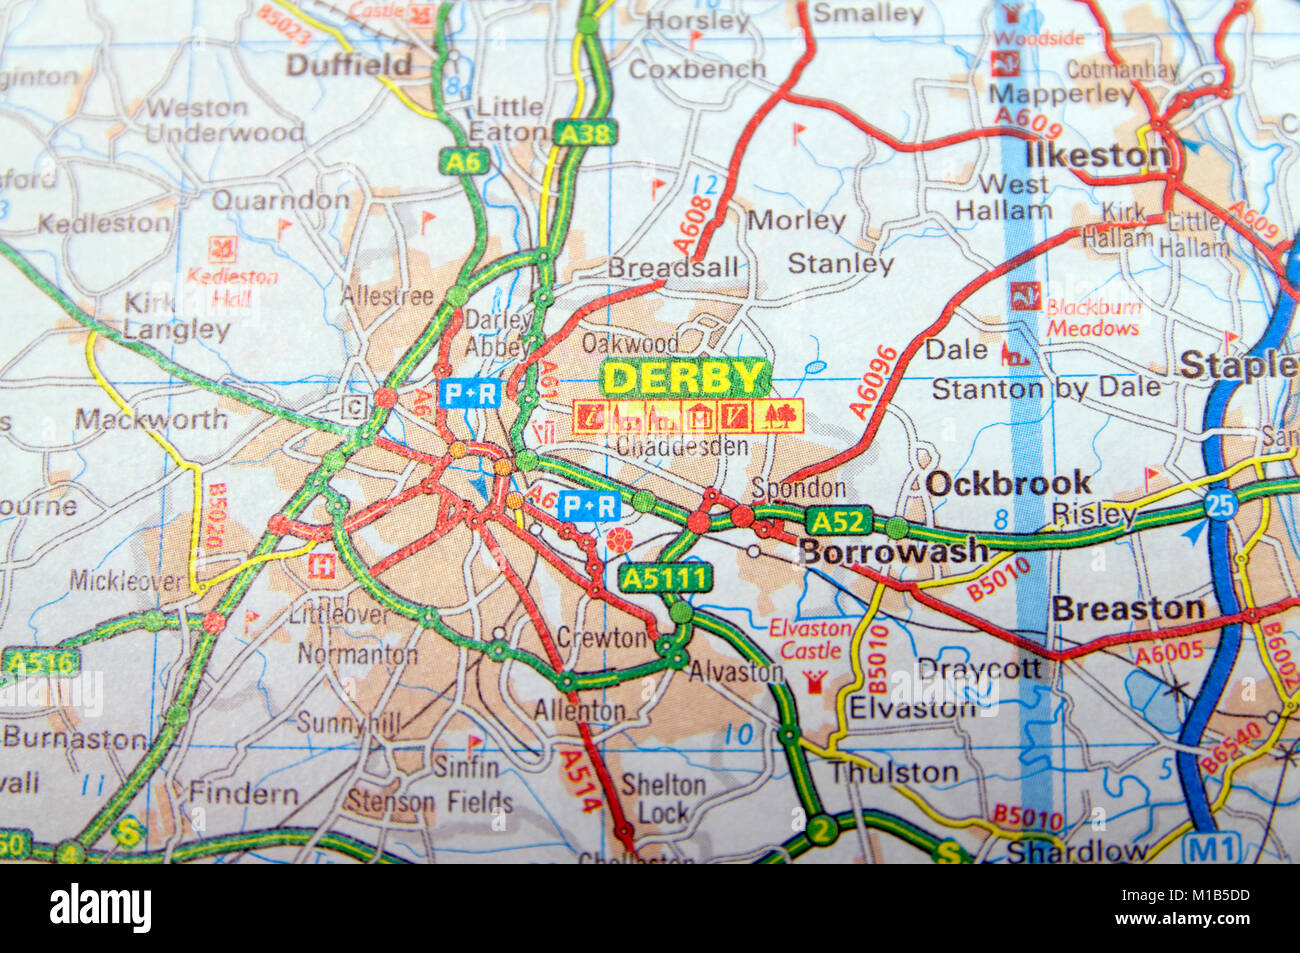 Road Map of Derby, England Stock Photo: 172964105 - Alamy